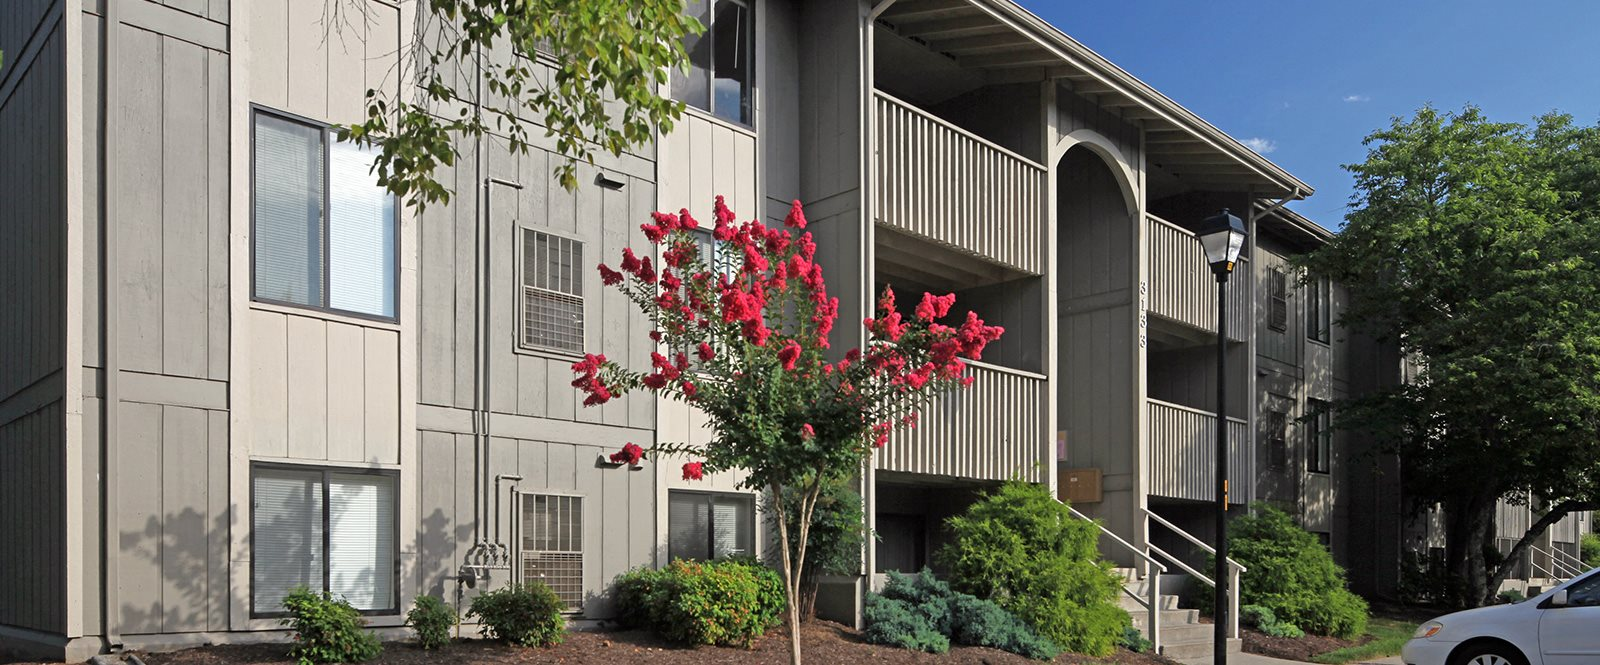 Elegant Exterior View Of Property at Honeywood Apartment Homes, Roanoke